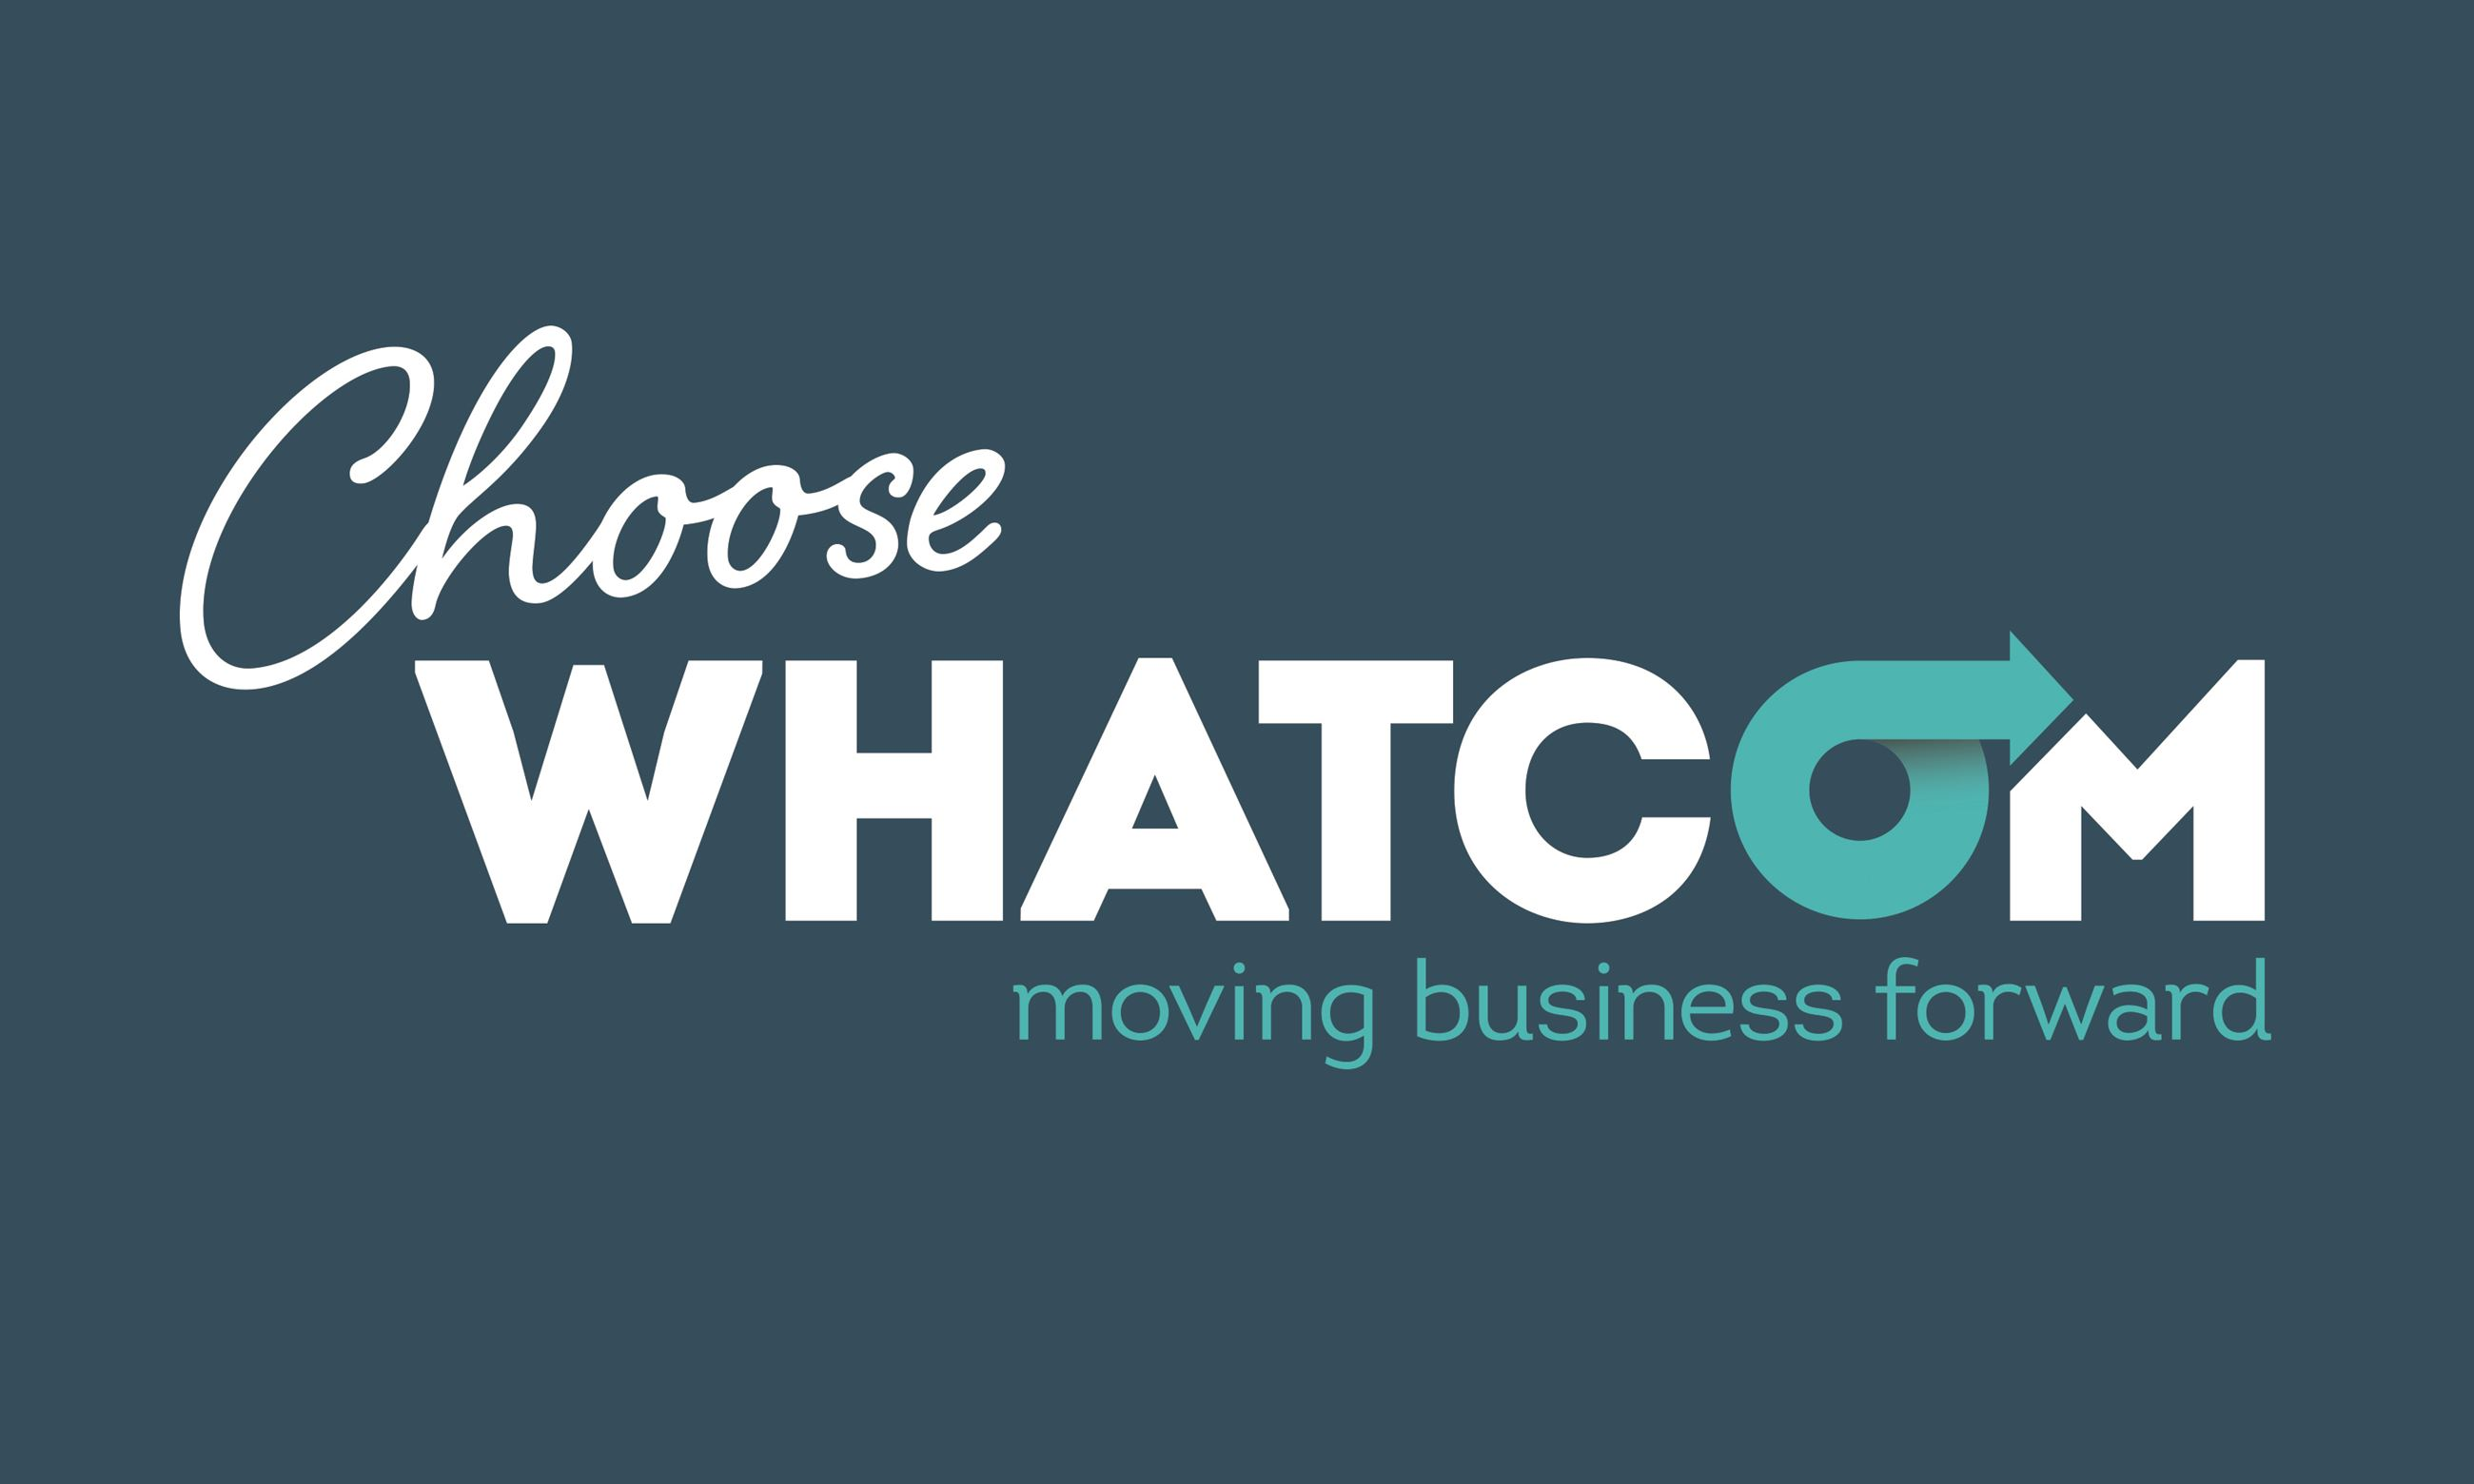 Choose Whatcom on blue